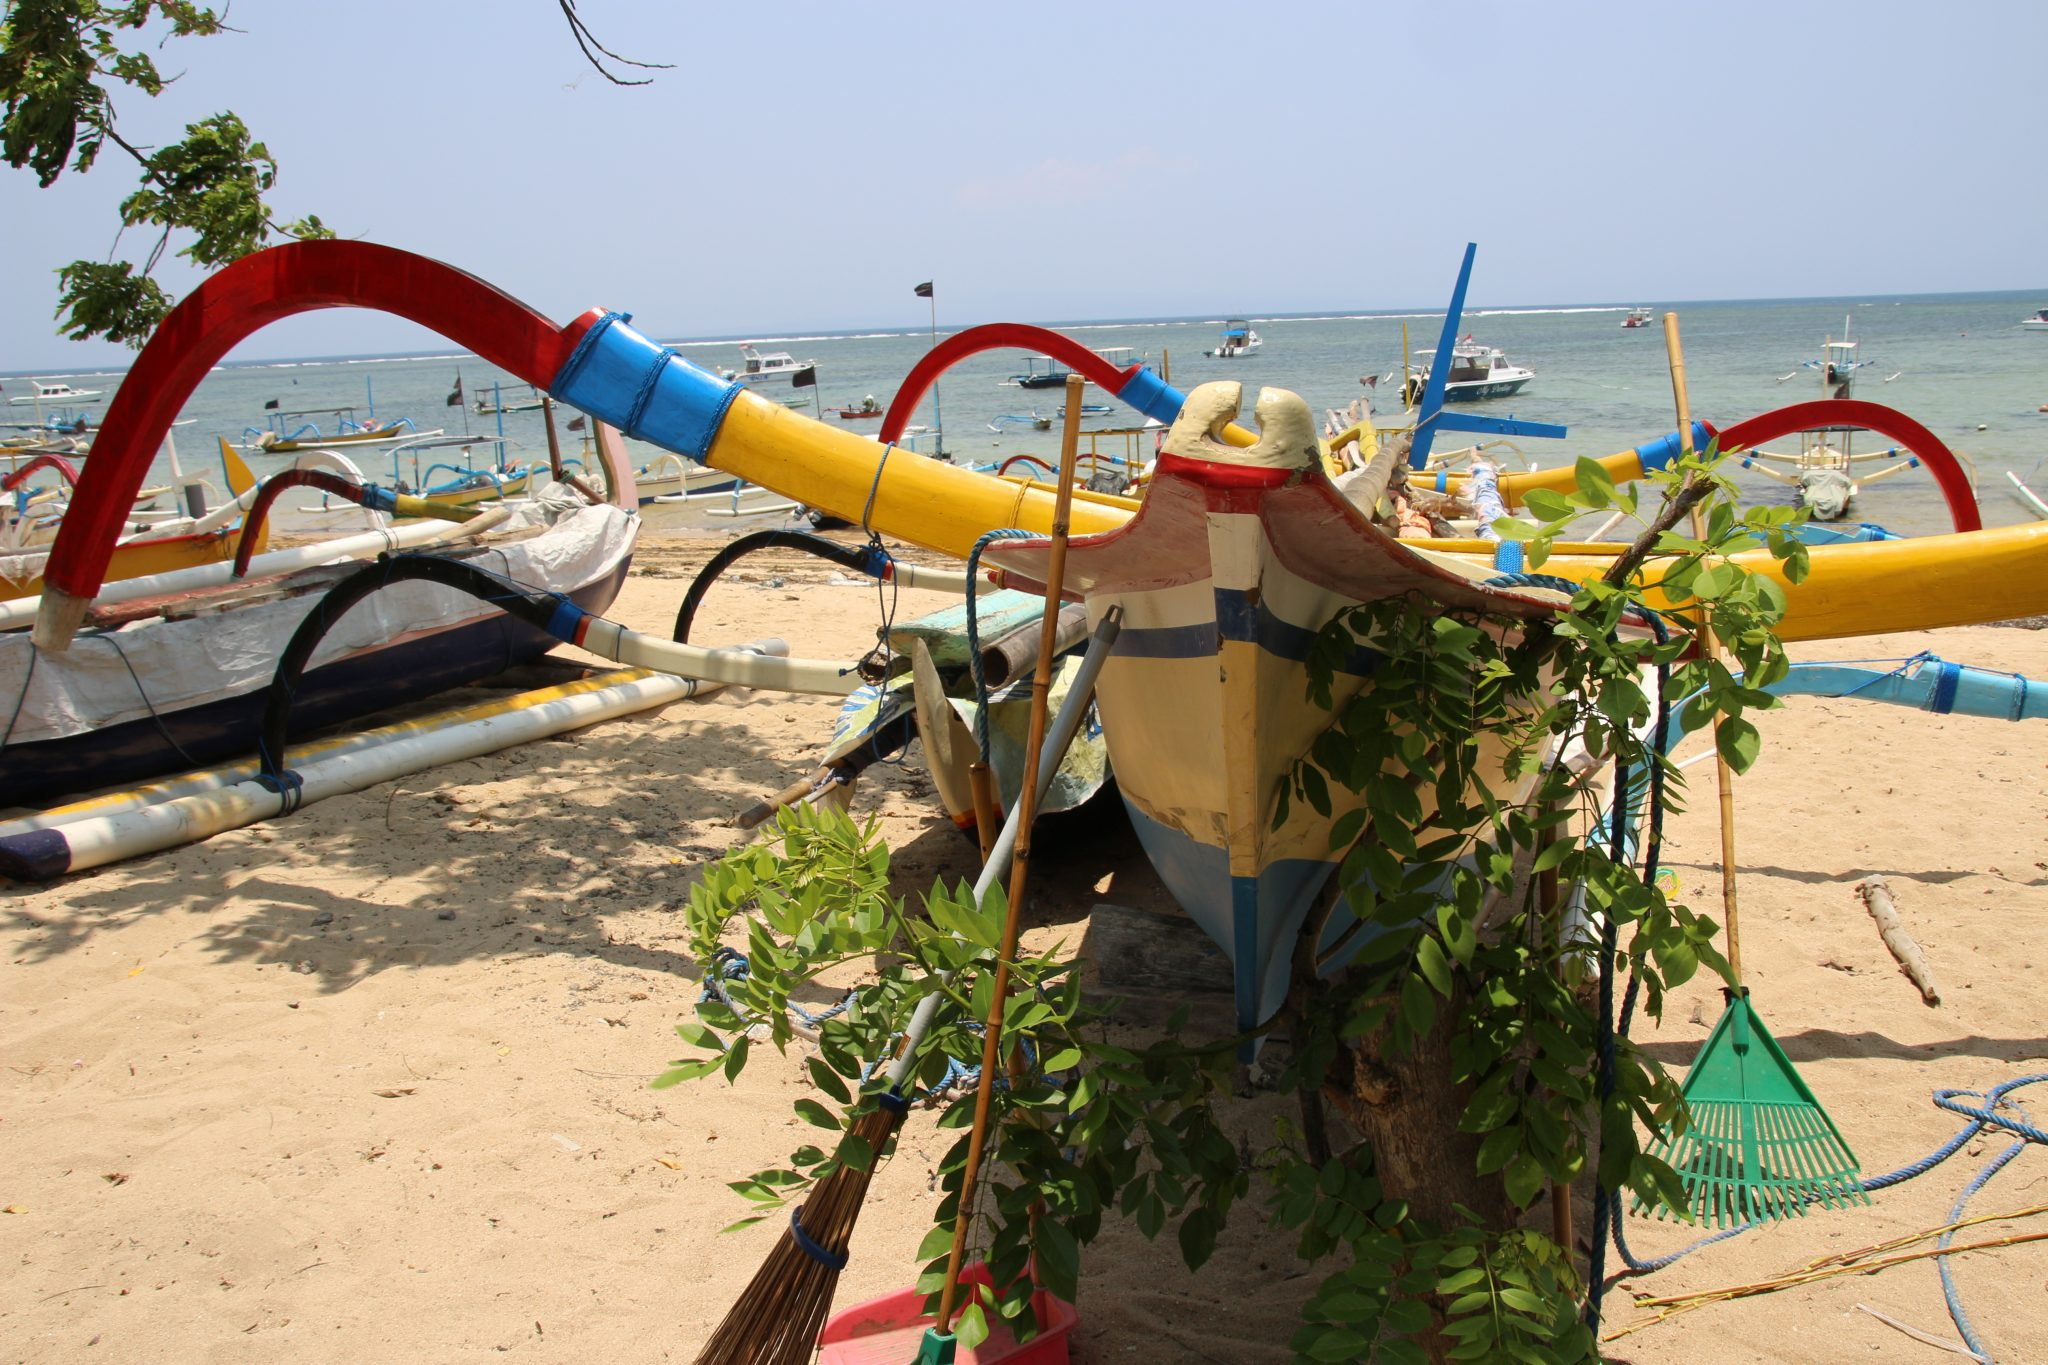 Fishing boats in Sanur, Bali